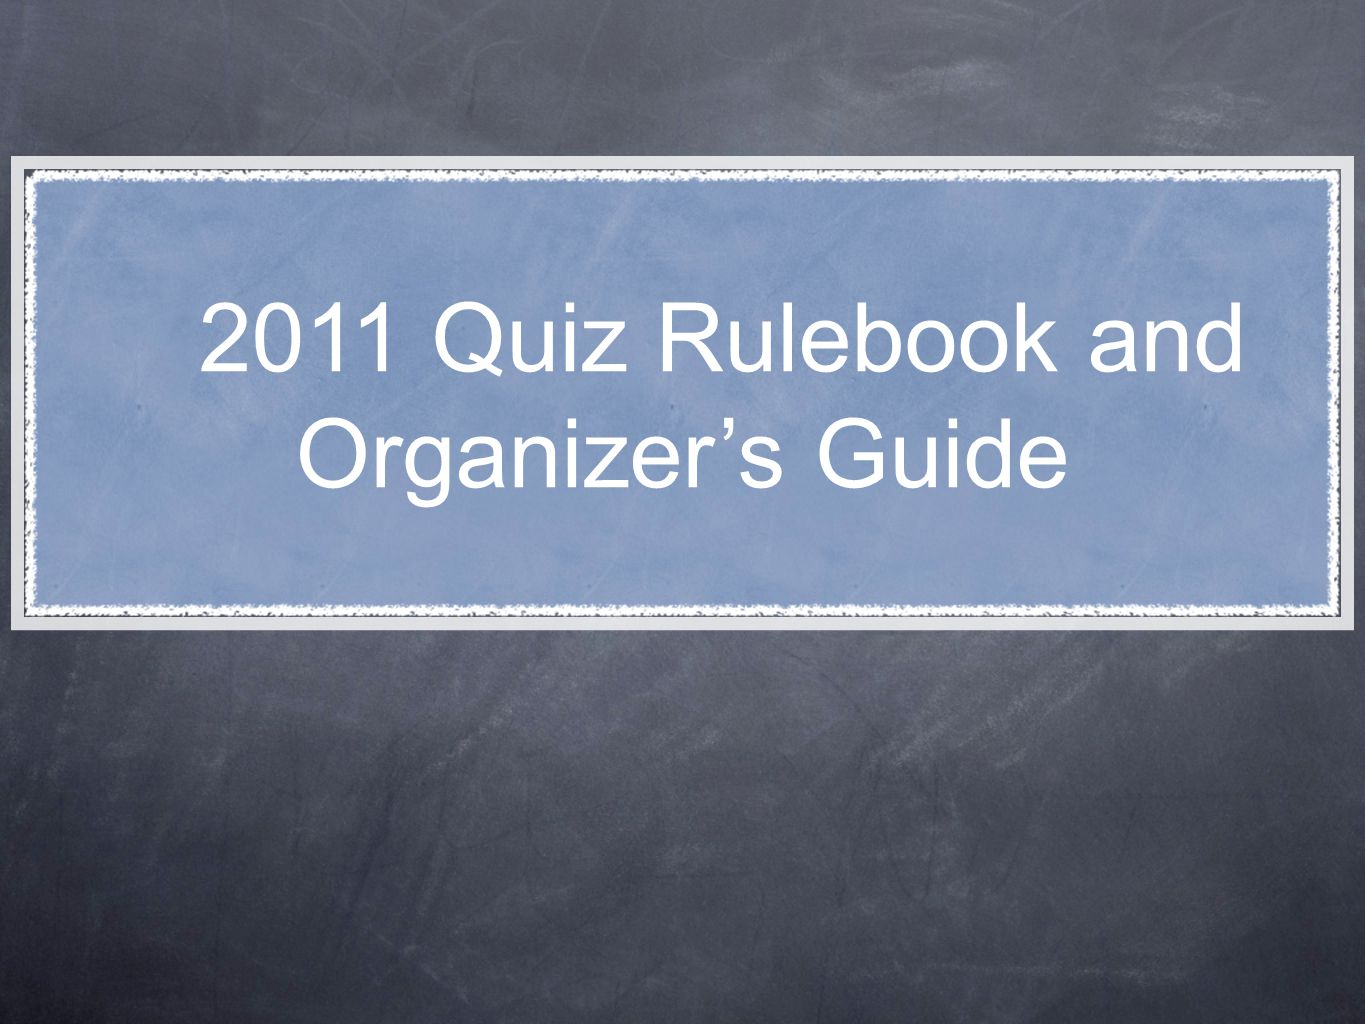 2011 Quiz Rulebook and Organizer's Guide